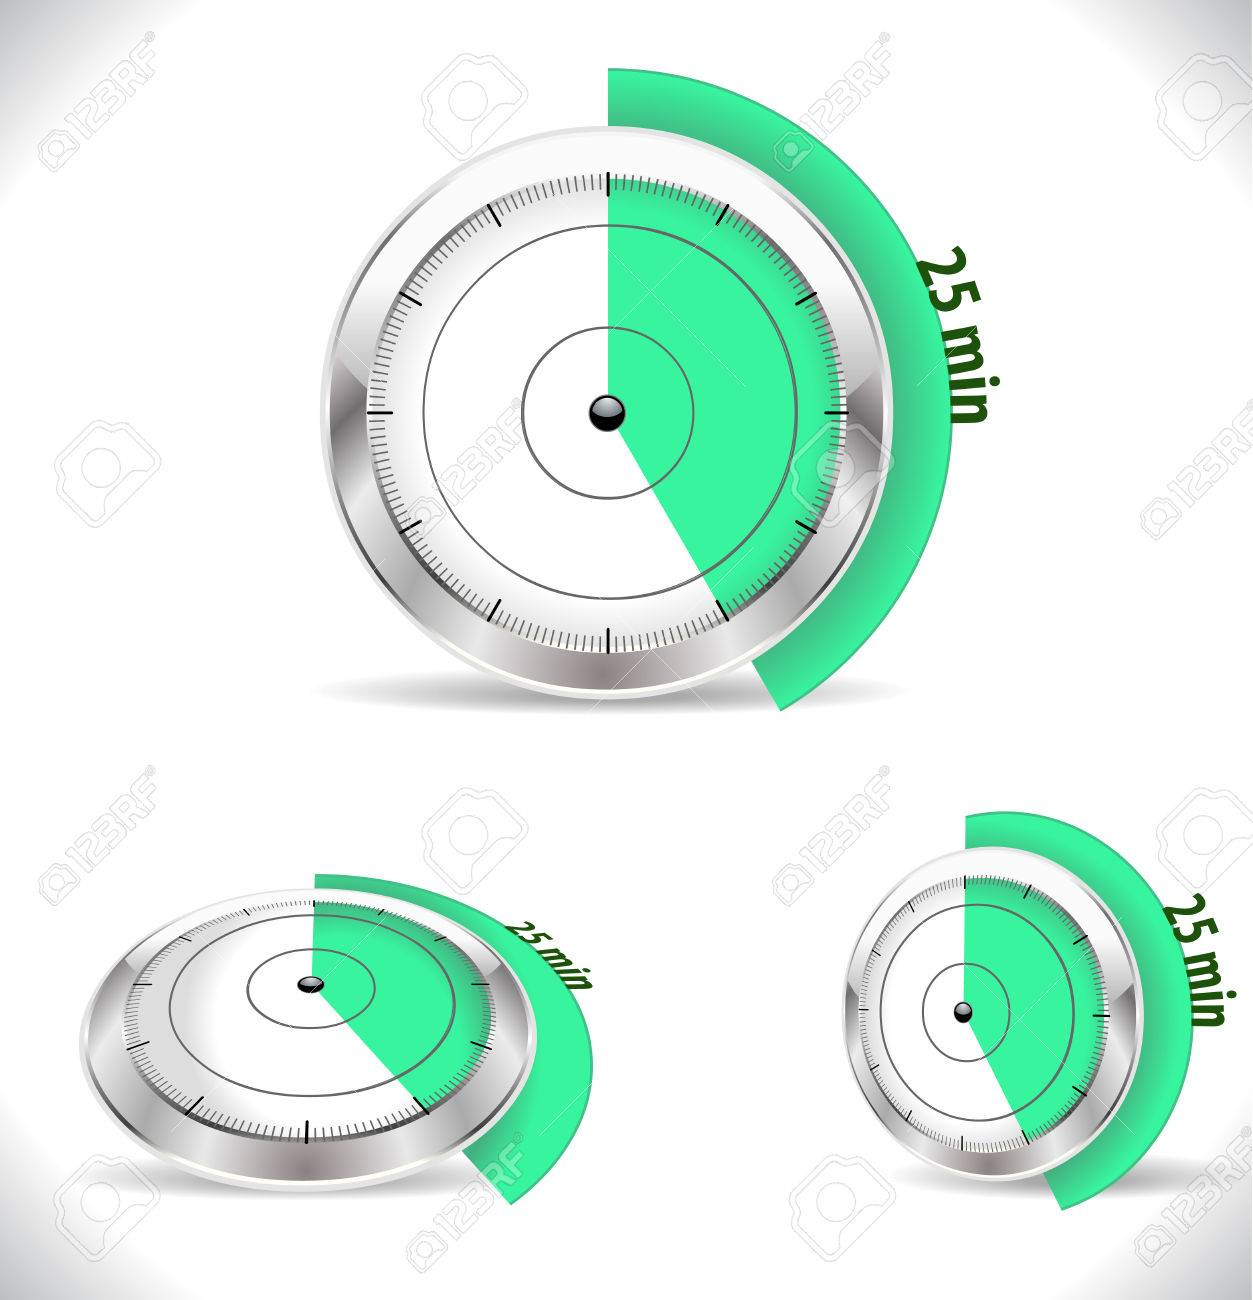 25 min timers twenty five minutes alarm stock vector 38634230